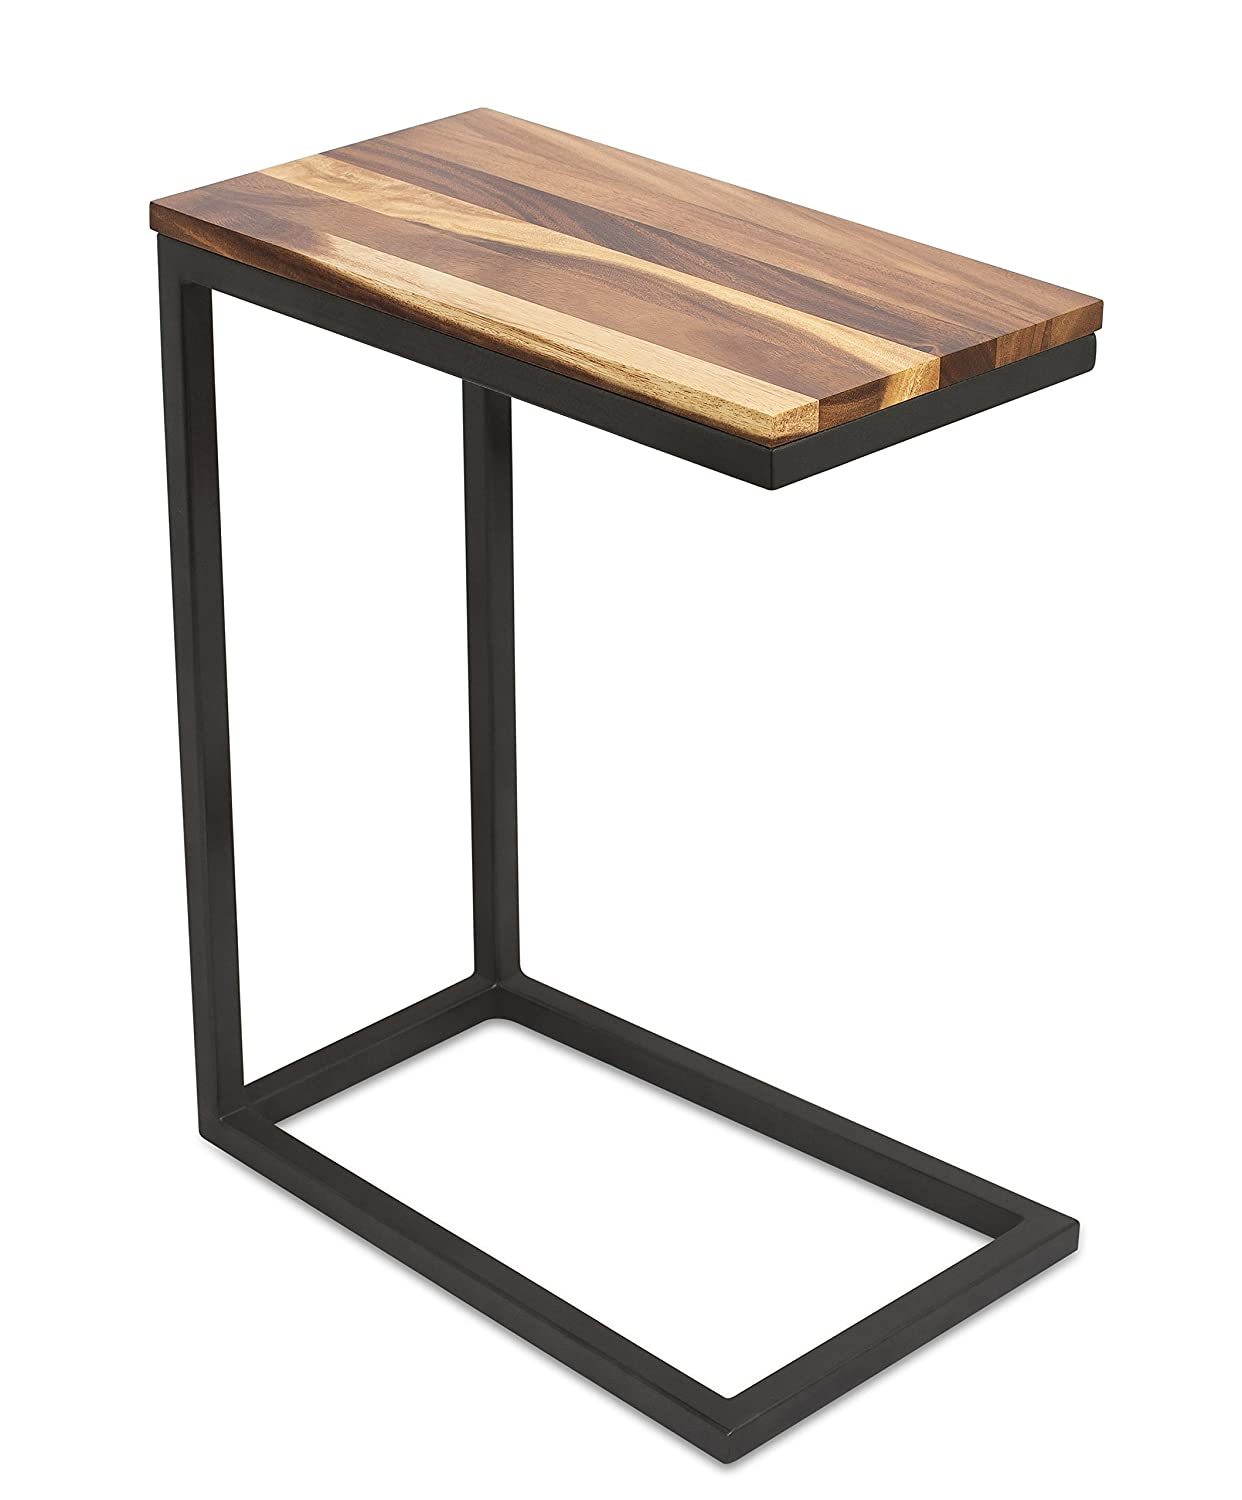 BIRDROCK HOME Acacia Wood TV Tray Side Table - Industrial Design - Fully Assembled - Natural Wood Bed Sofa Snack End Table